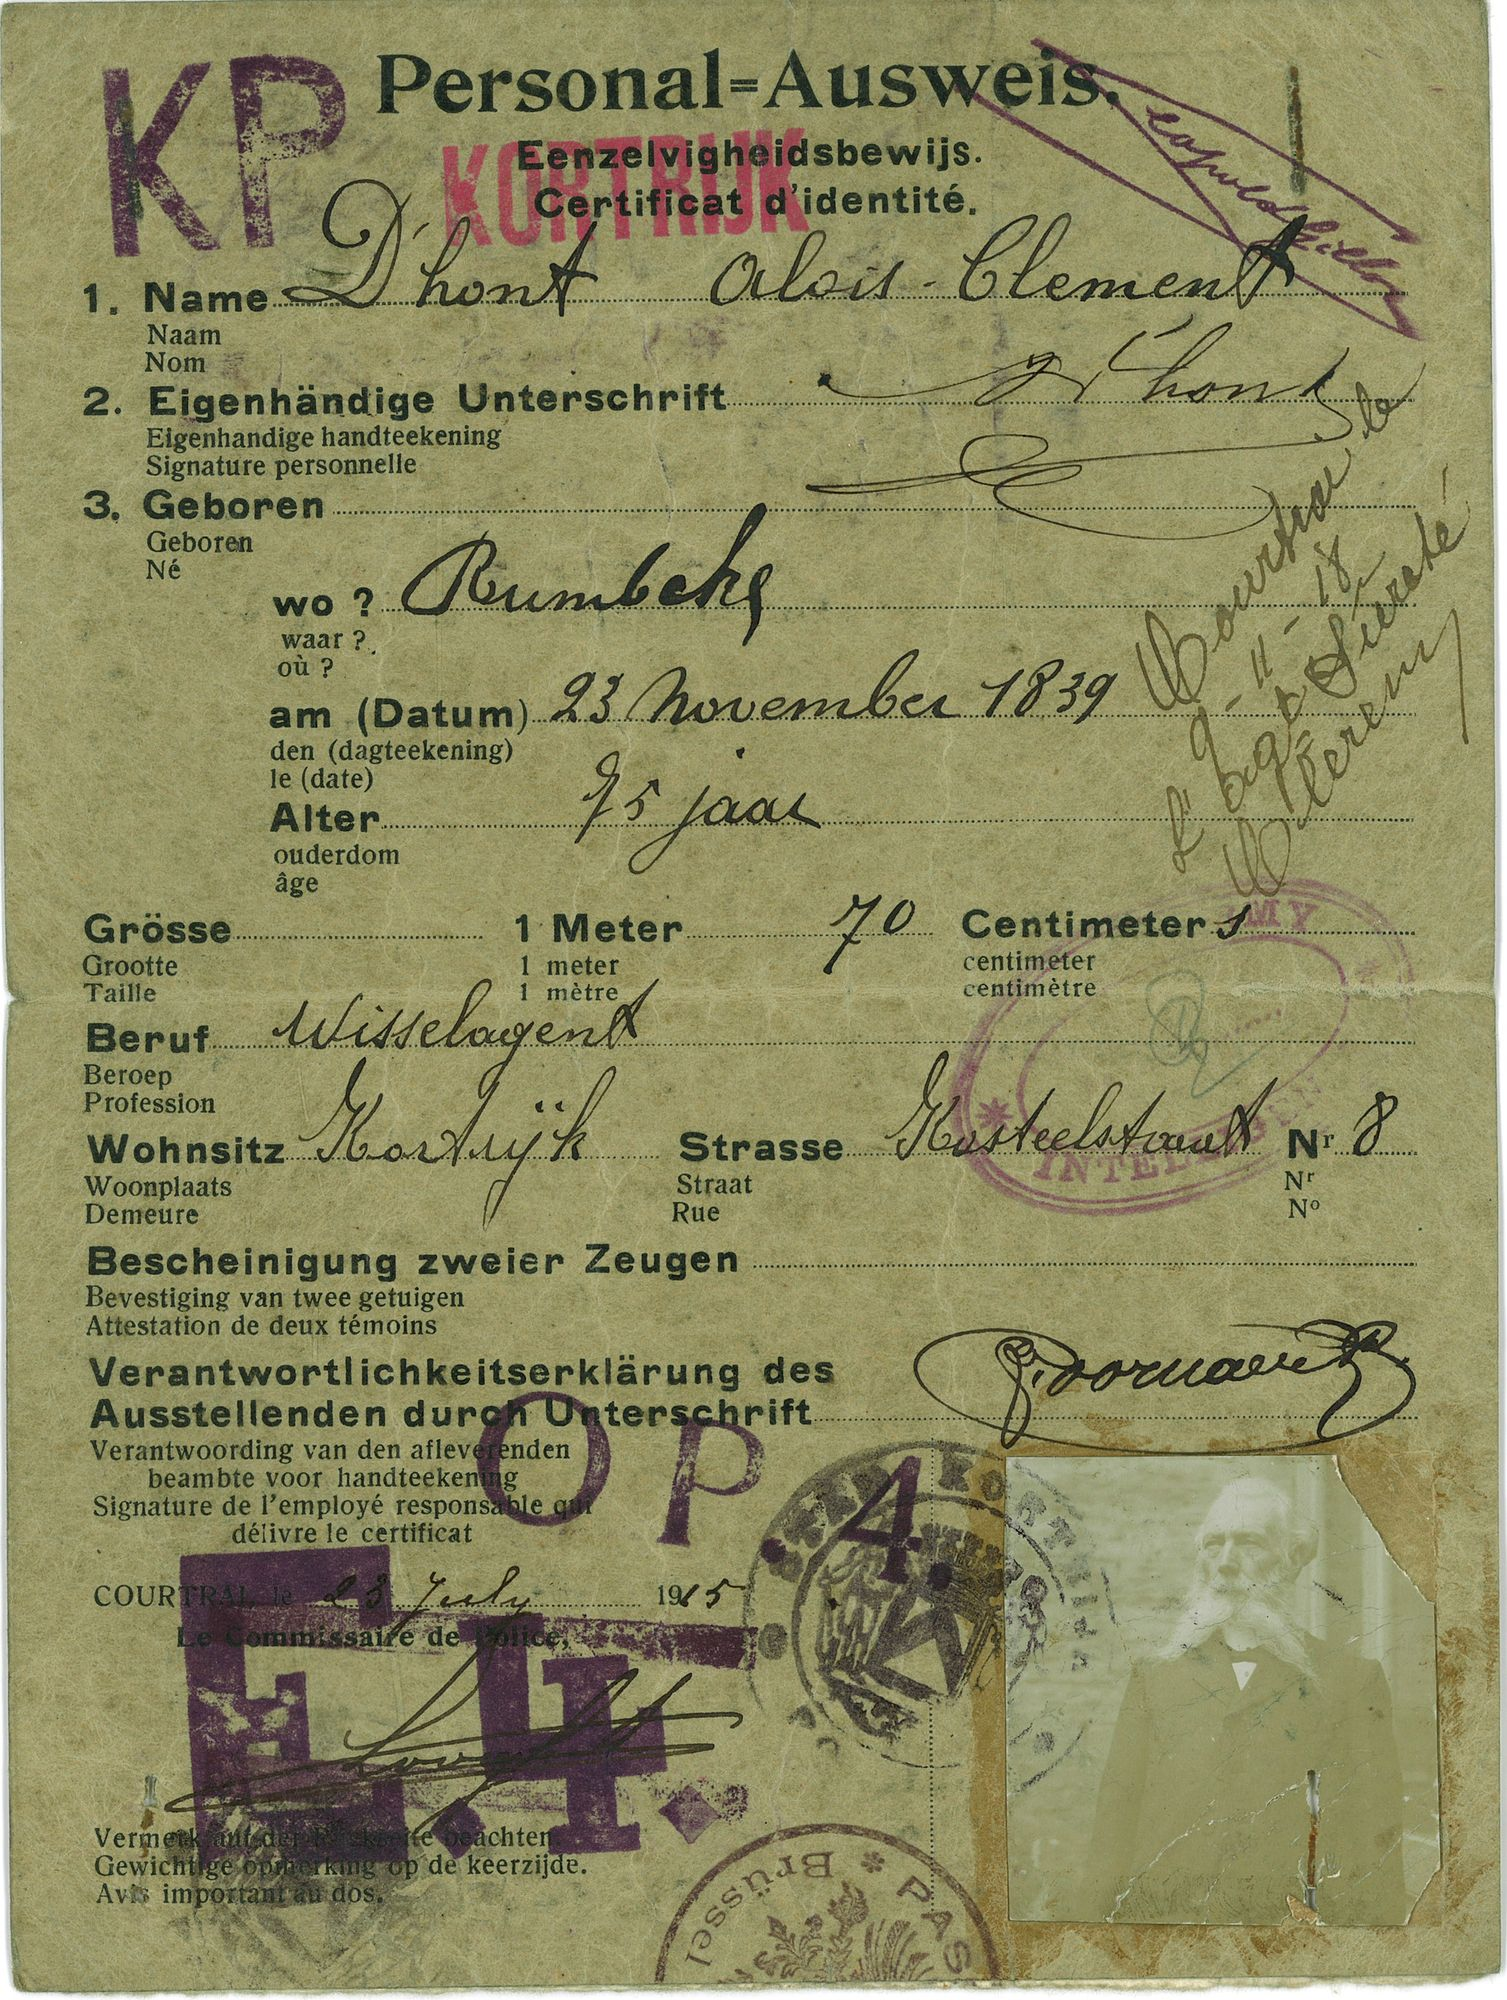 Personalsausweis 1915